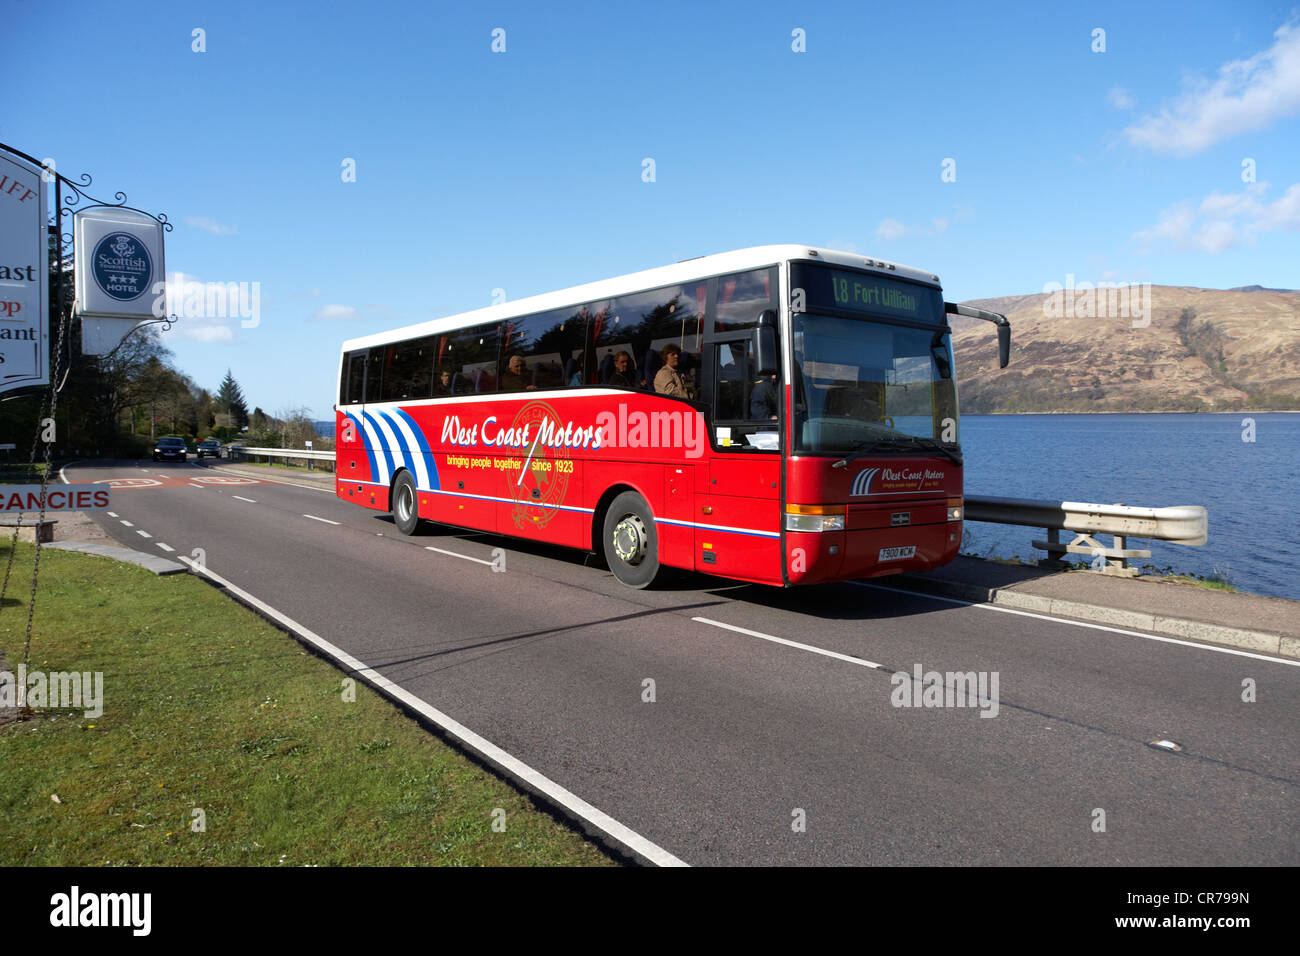 west coast motors bus coach on the main a82 tourist route road along the shores of loch linnhe near fort william - Stock Image